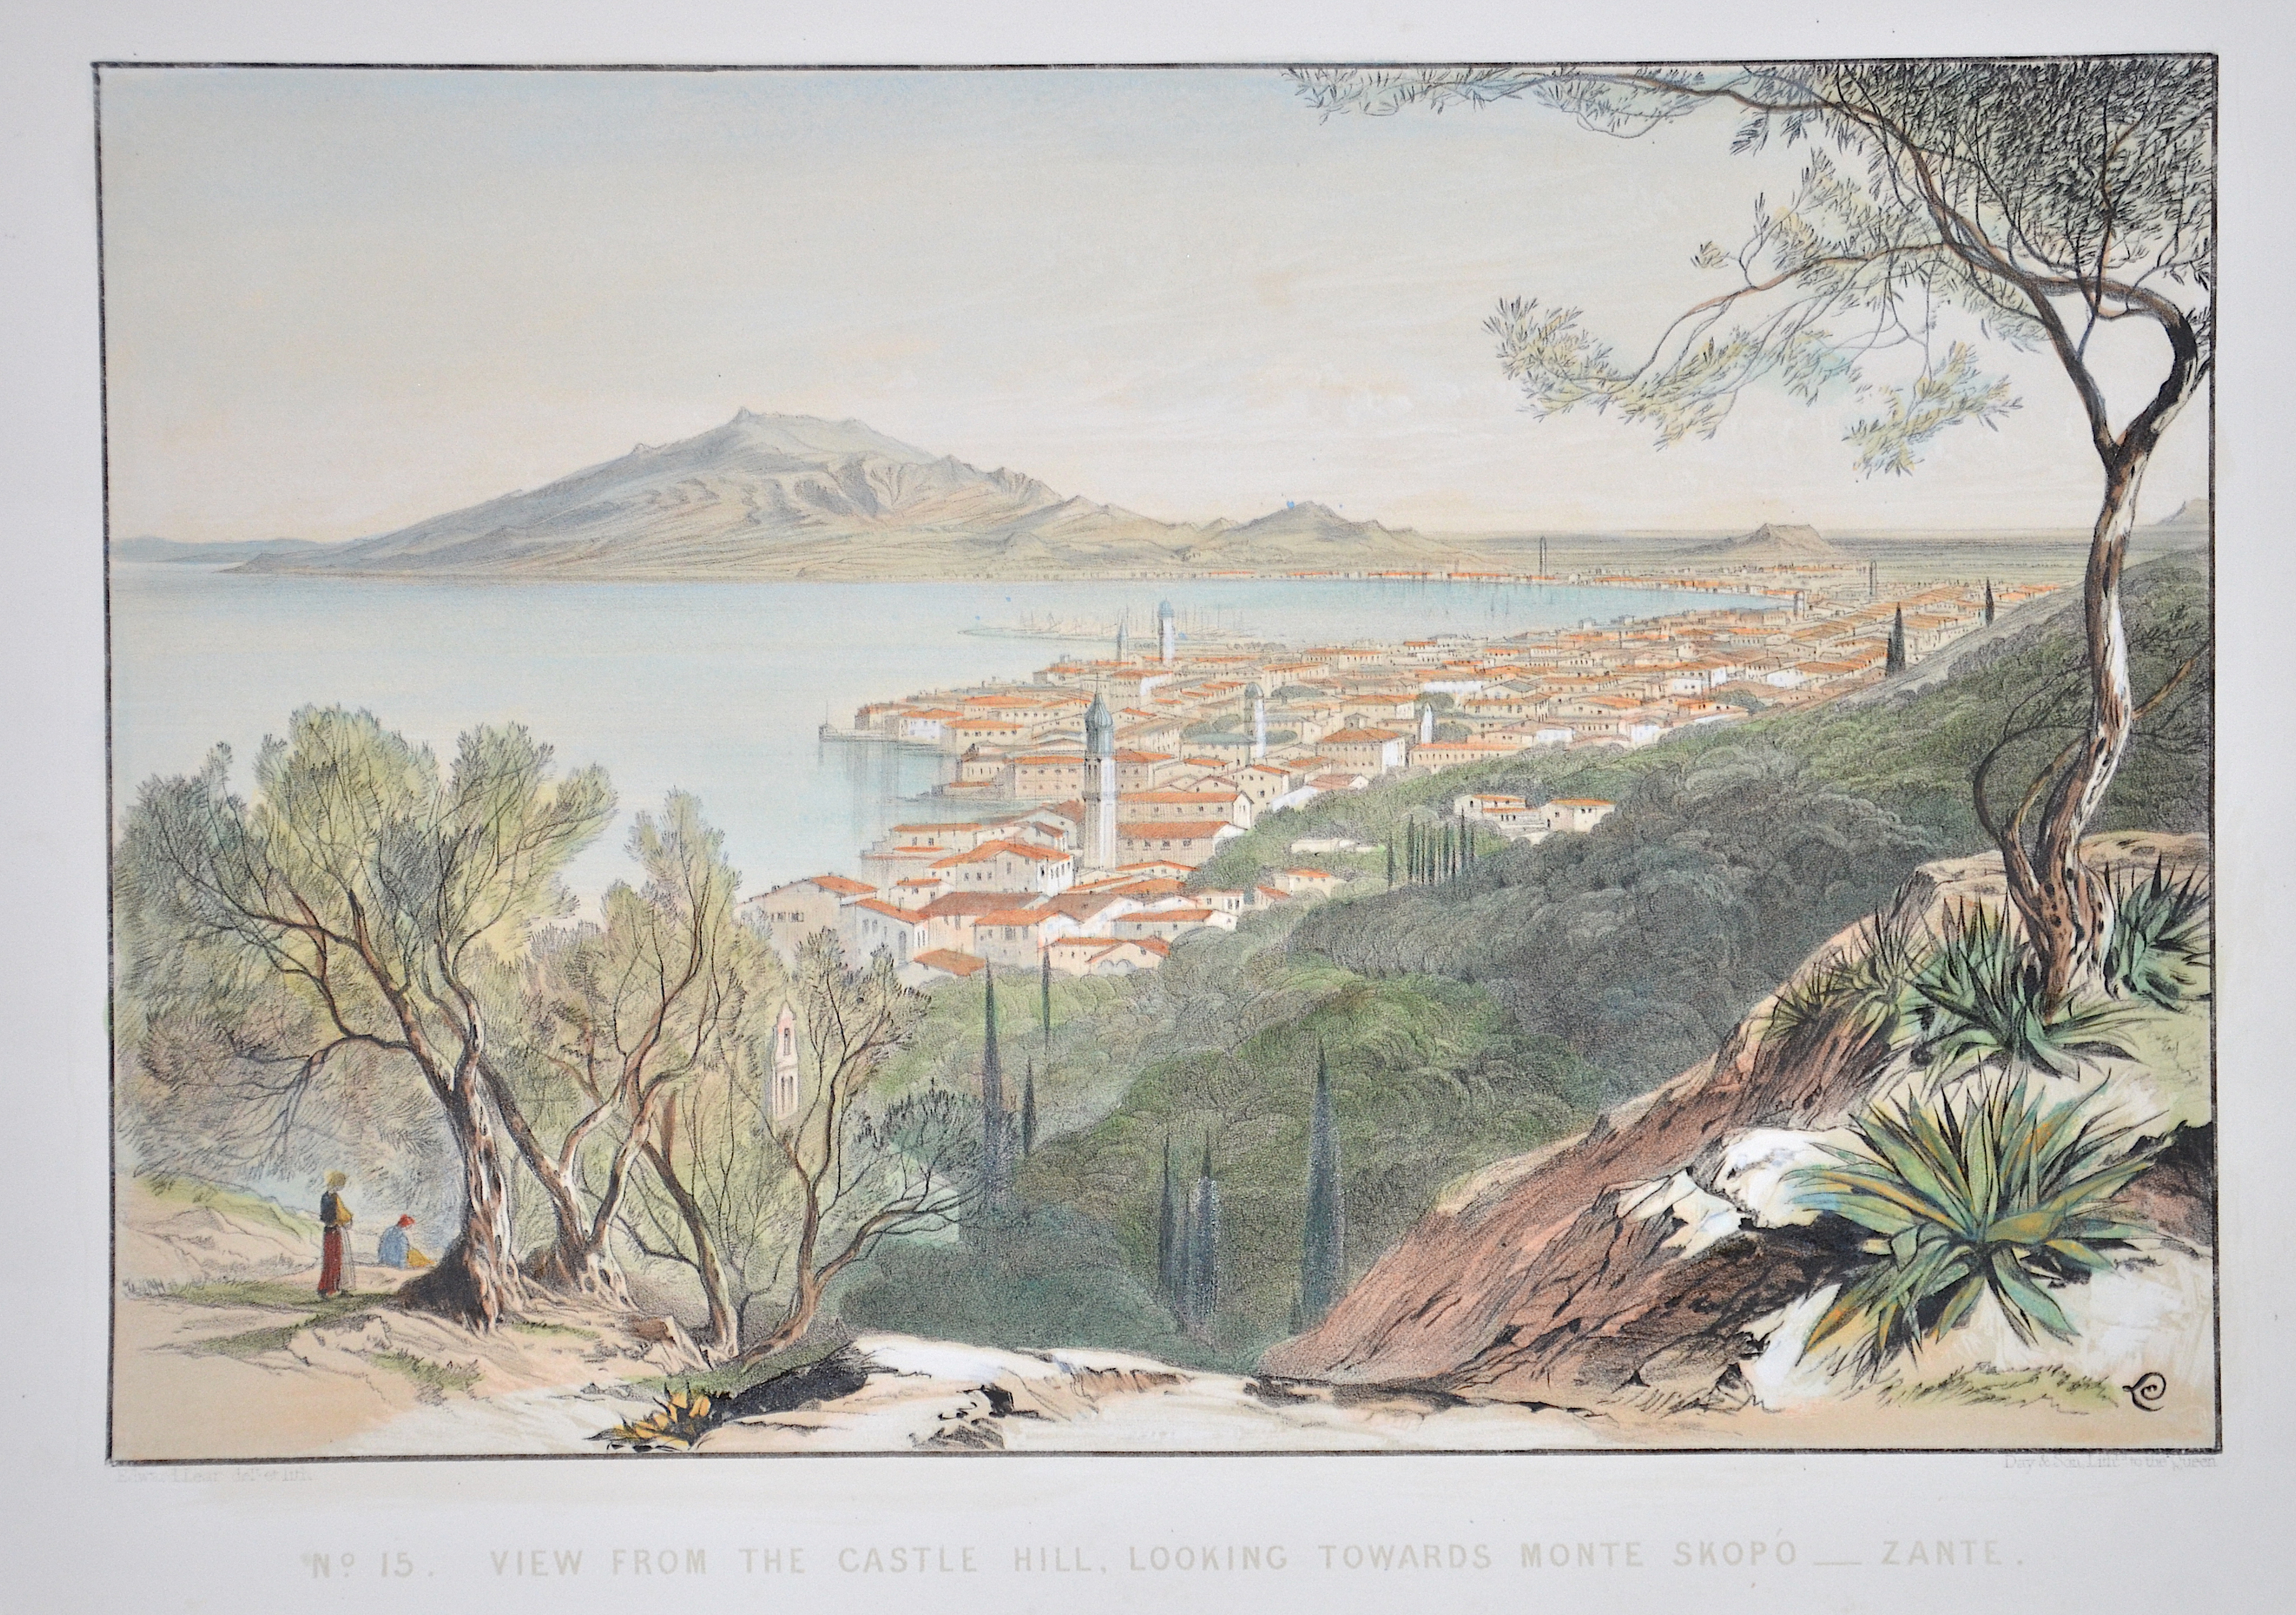 Lear Edward No. 15. View from the Castle Hill, looking towards Monte Skopó – Zante.